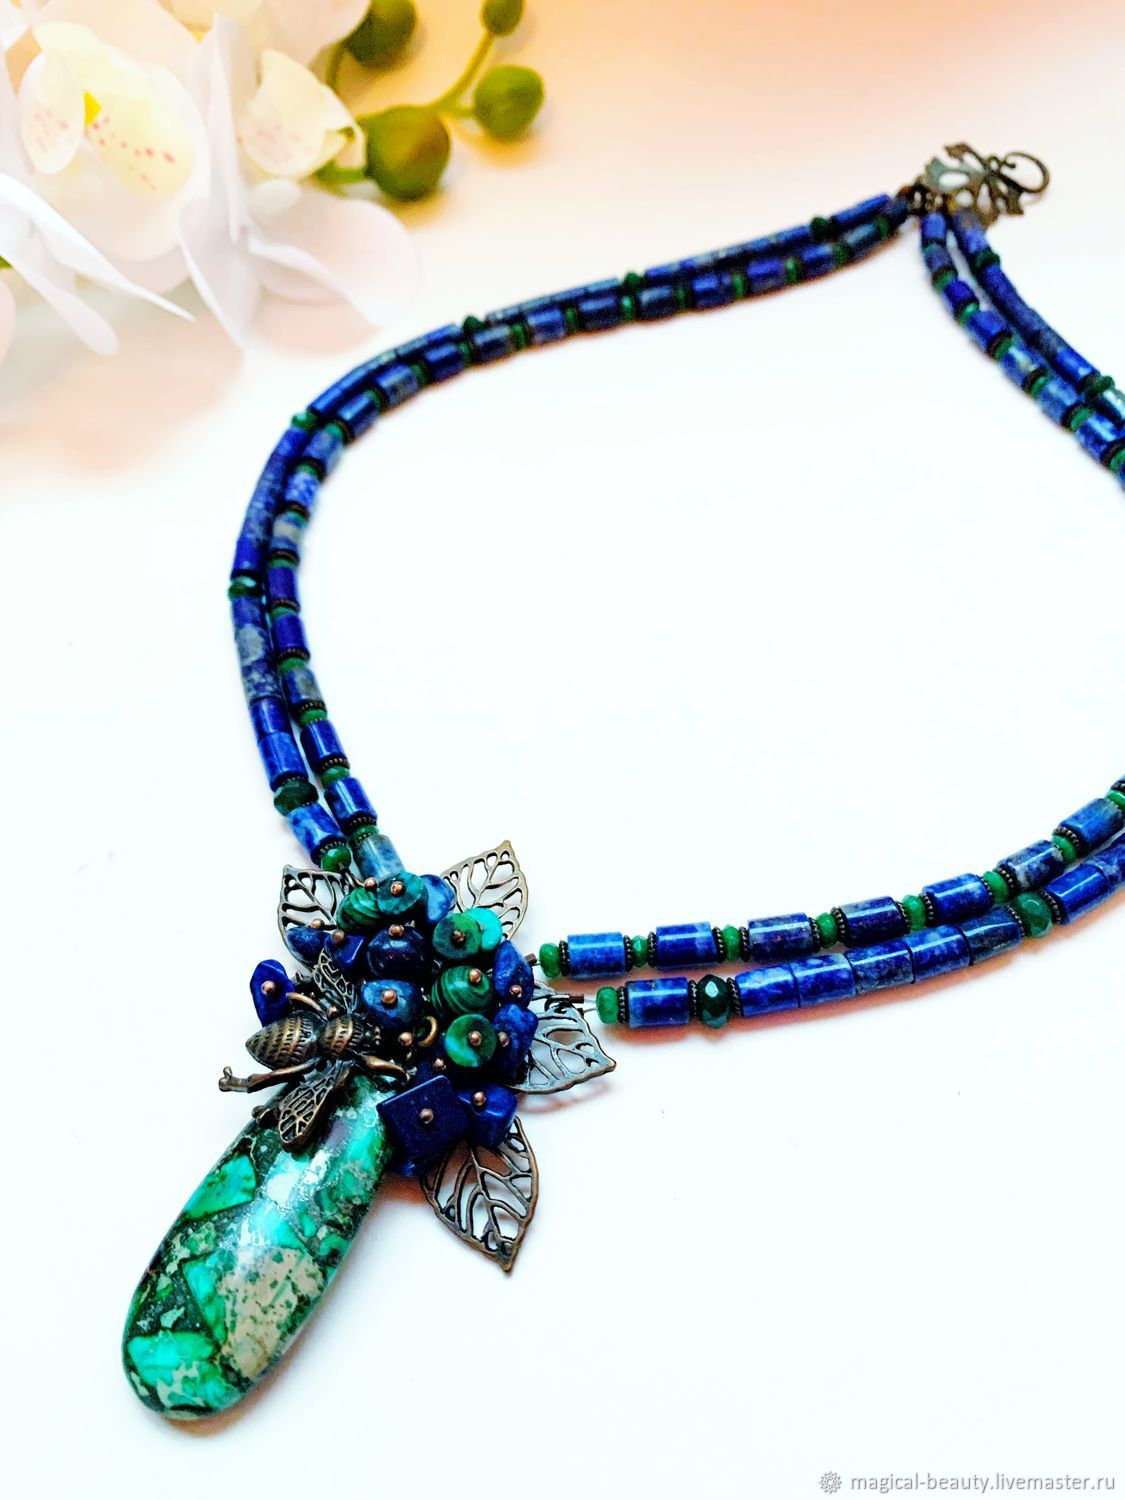 Necklace with lapis lazuli and variscite, Necklace, Moscow,  Фото №1